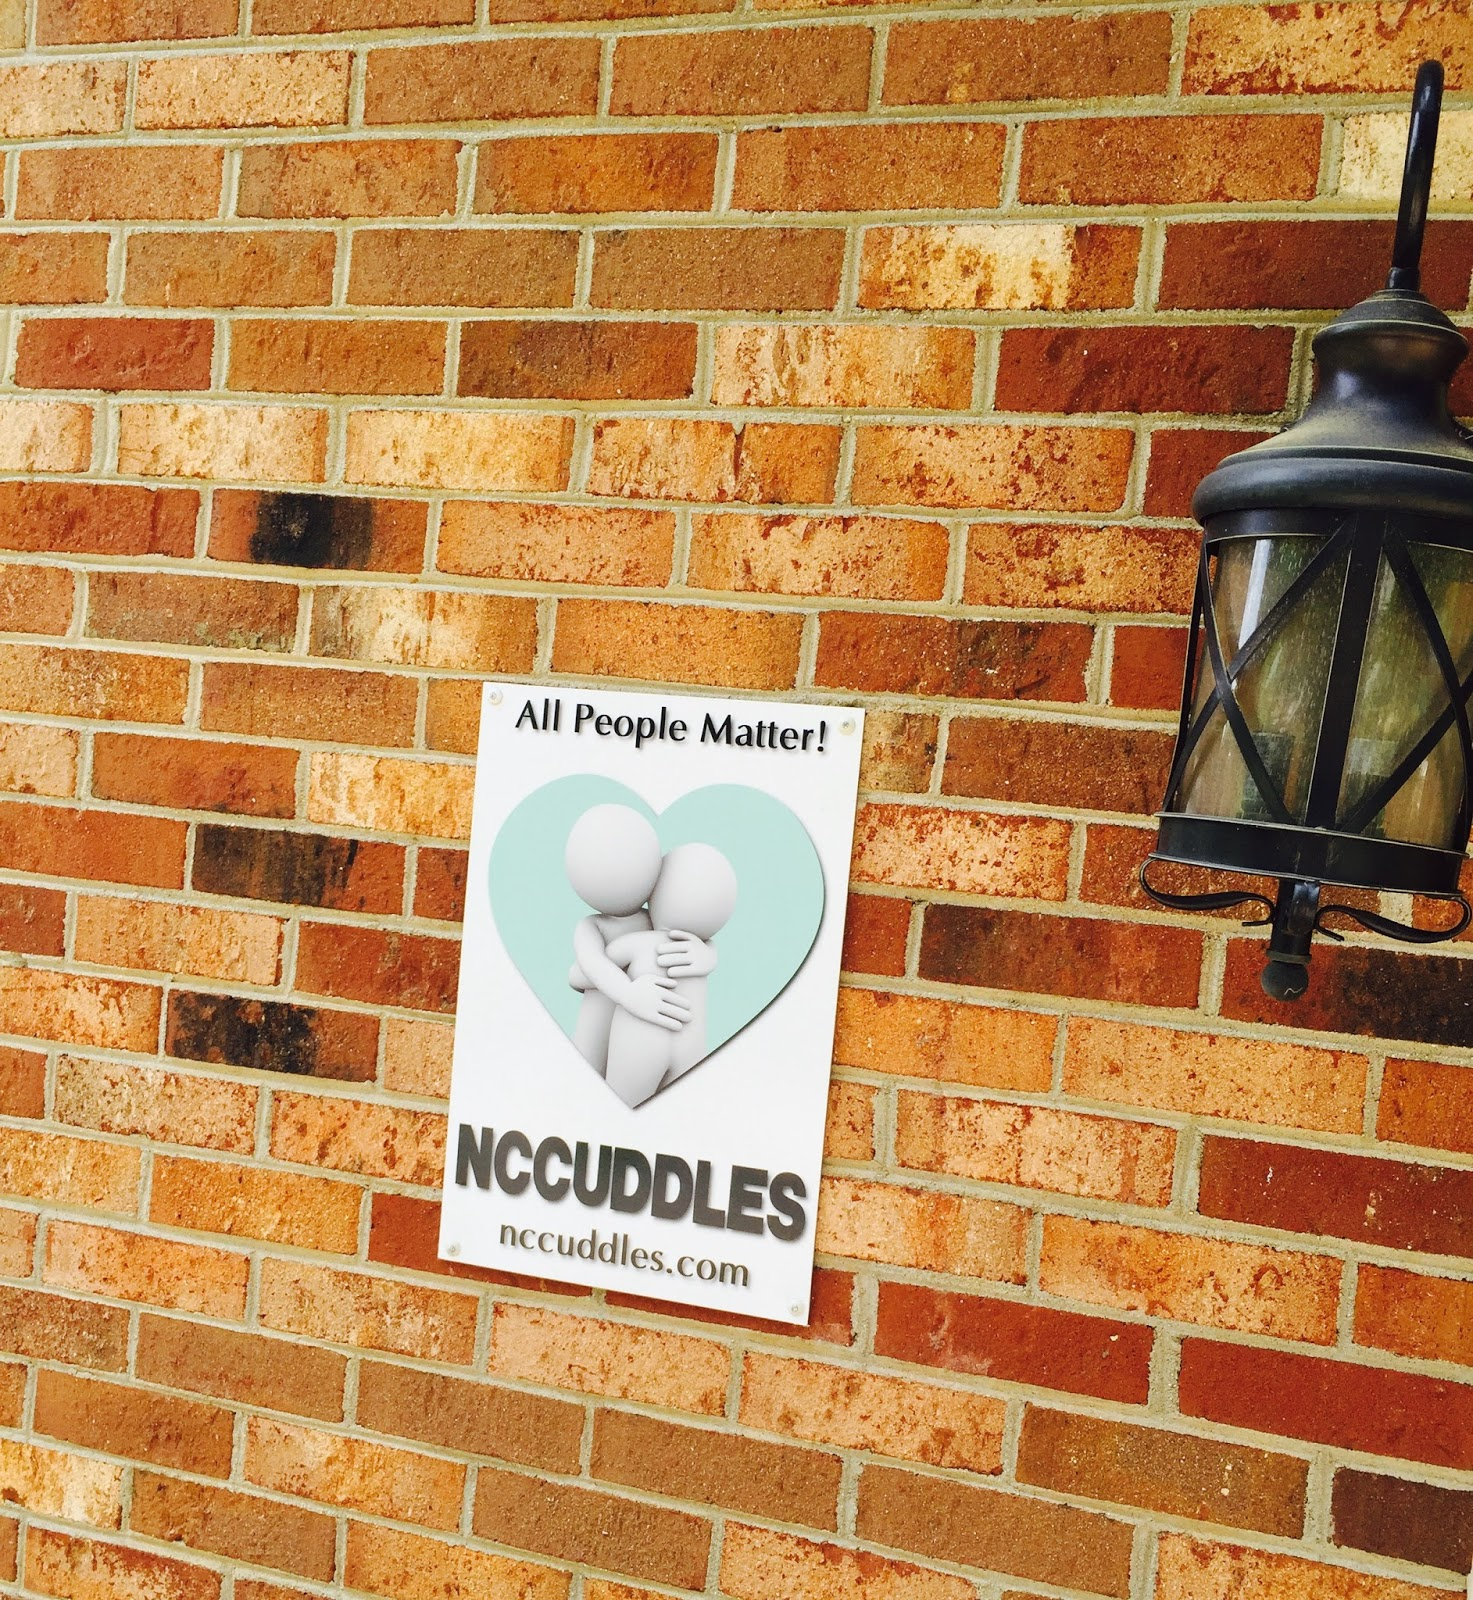 The YES! Weekly Blog: Welcome to NC Cuddles! A business that Cuddles